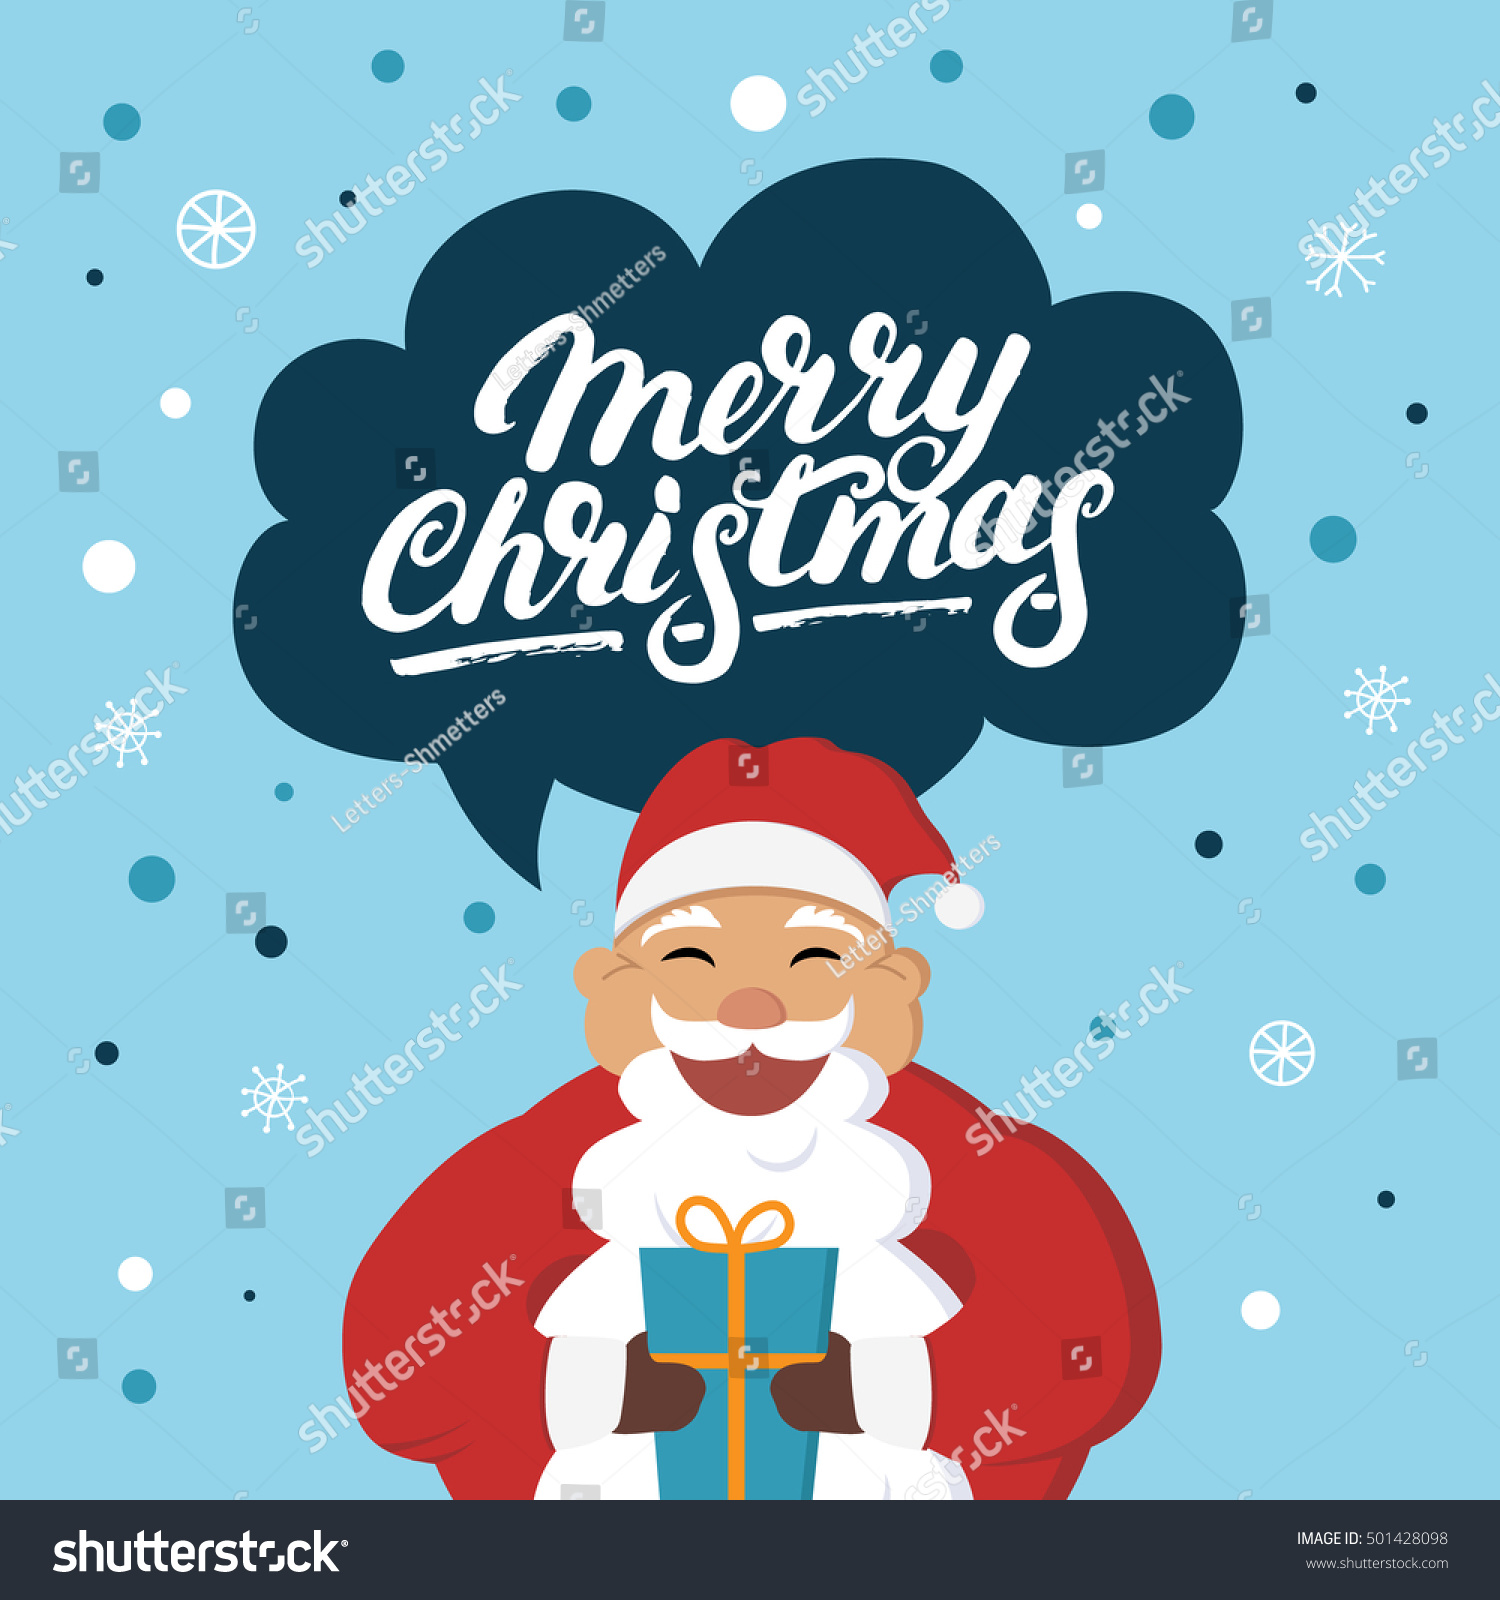 Funny Santa Claus Gift Wishes You Stock Vector Royalty Free